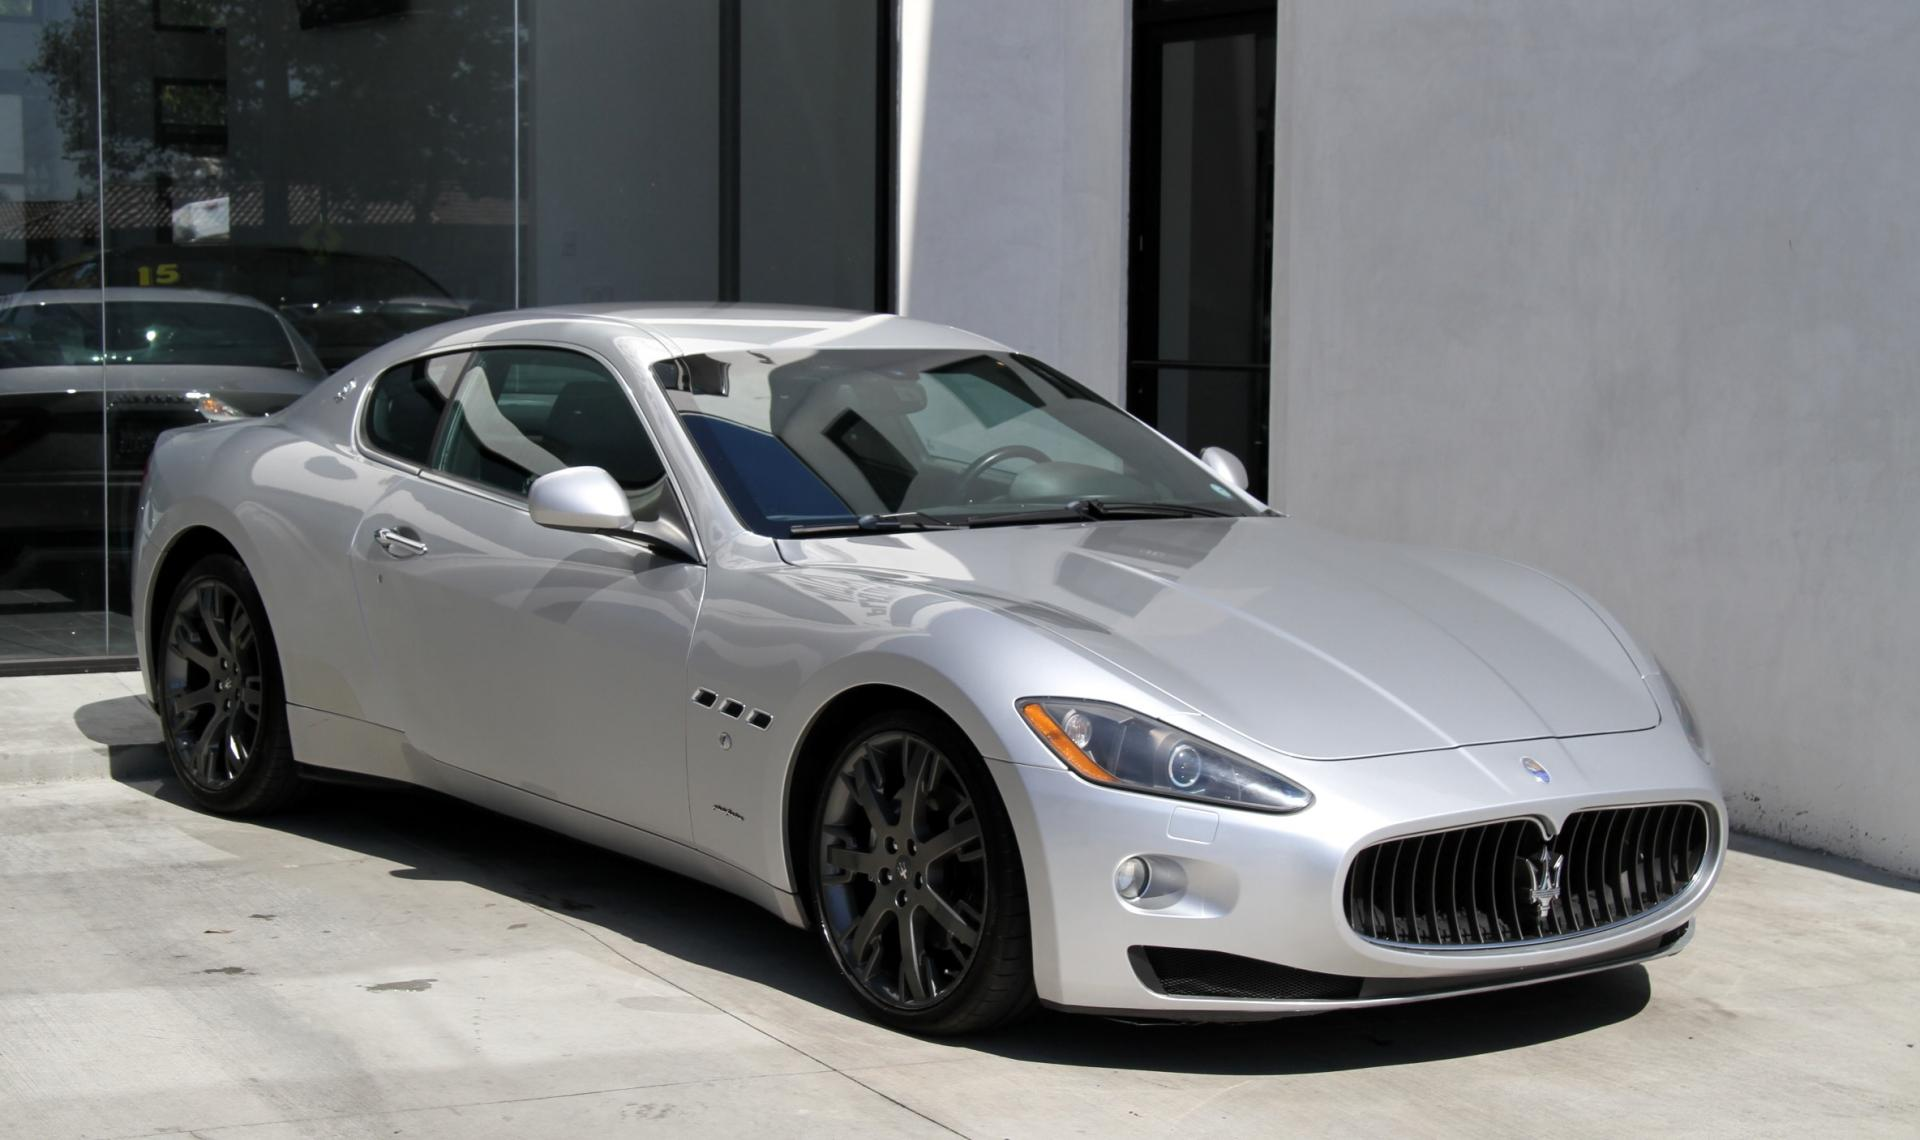 Car Garage Near Me >> 2008 Maserati GranTurismo Stock # 5895 for sale near Redondo Beach, CA | CA Maserati Dealer